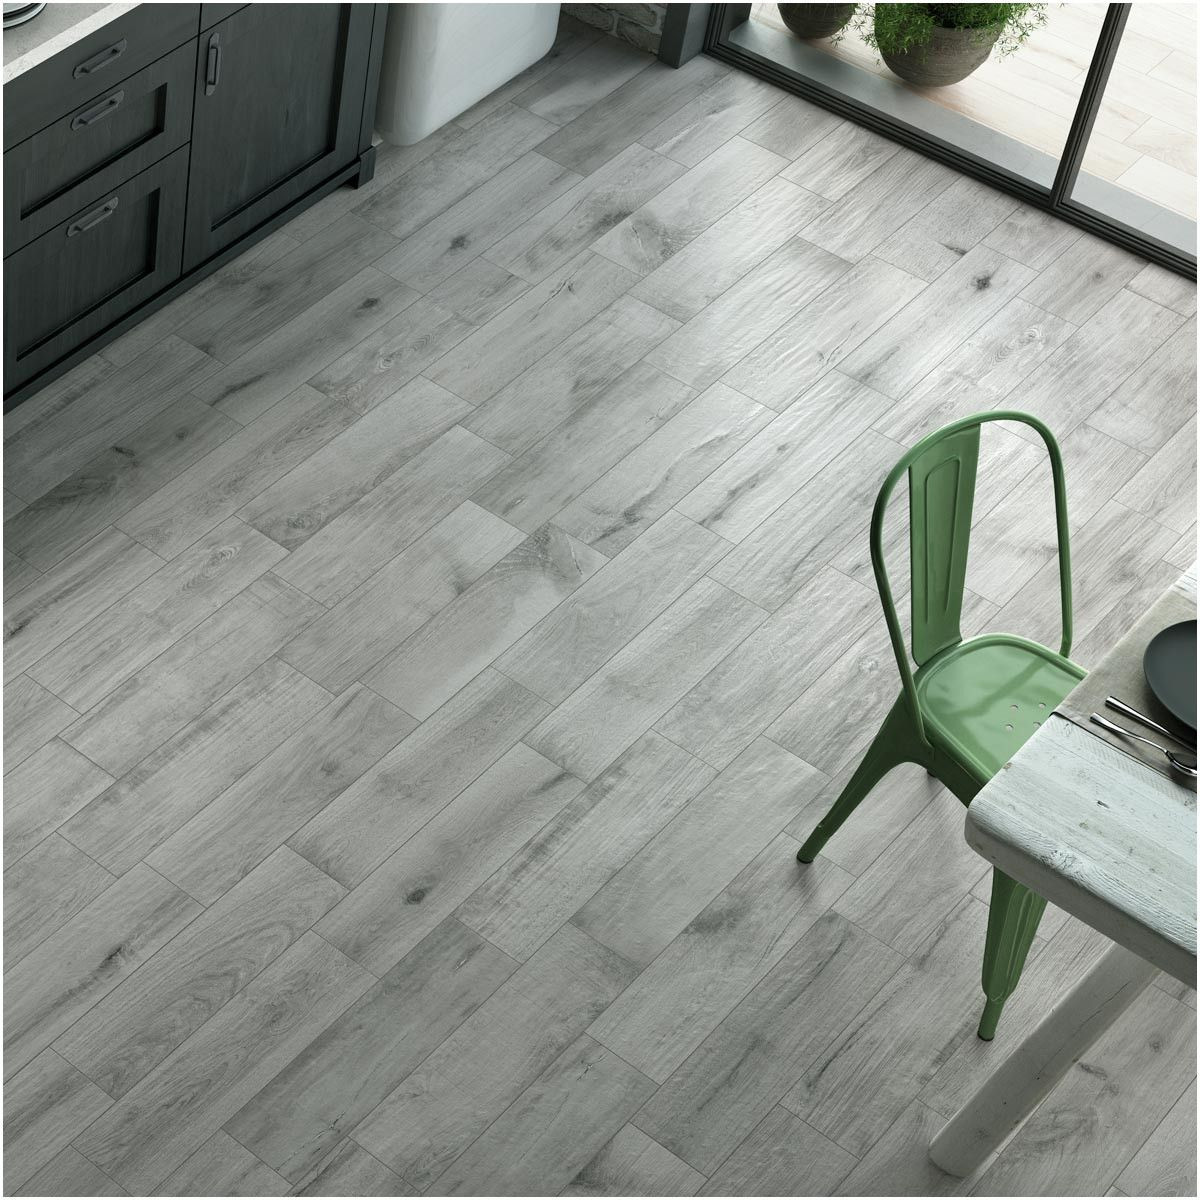 hardwood floors vs wood look tile of porcelain floor tiles pros and cons od grain tile bathroom wood pertaining to porcelain floor tiles pros and cons od grain tile bathroom wood shower no grout porcelain pros